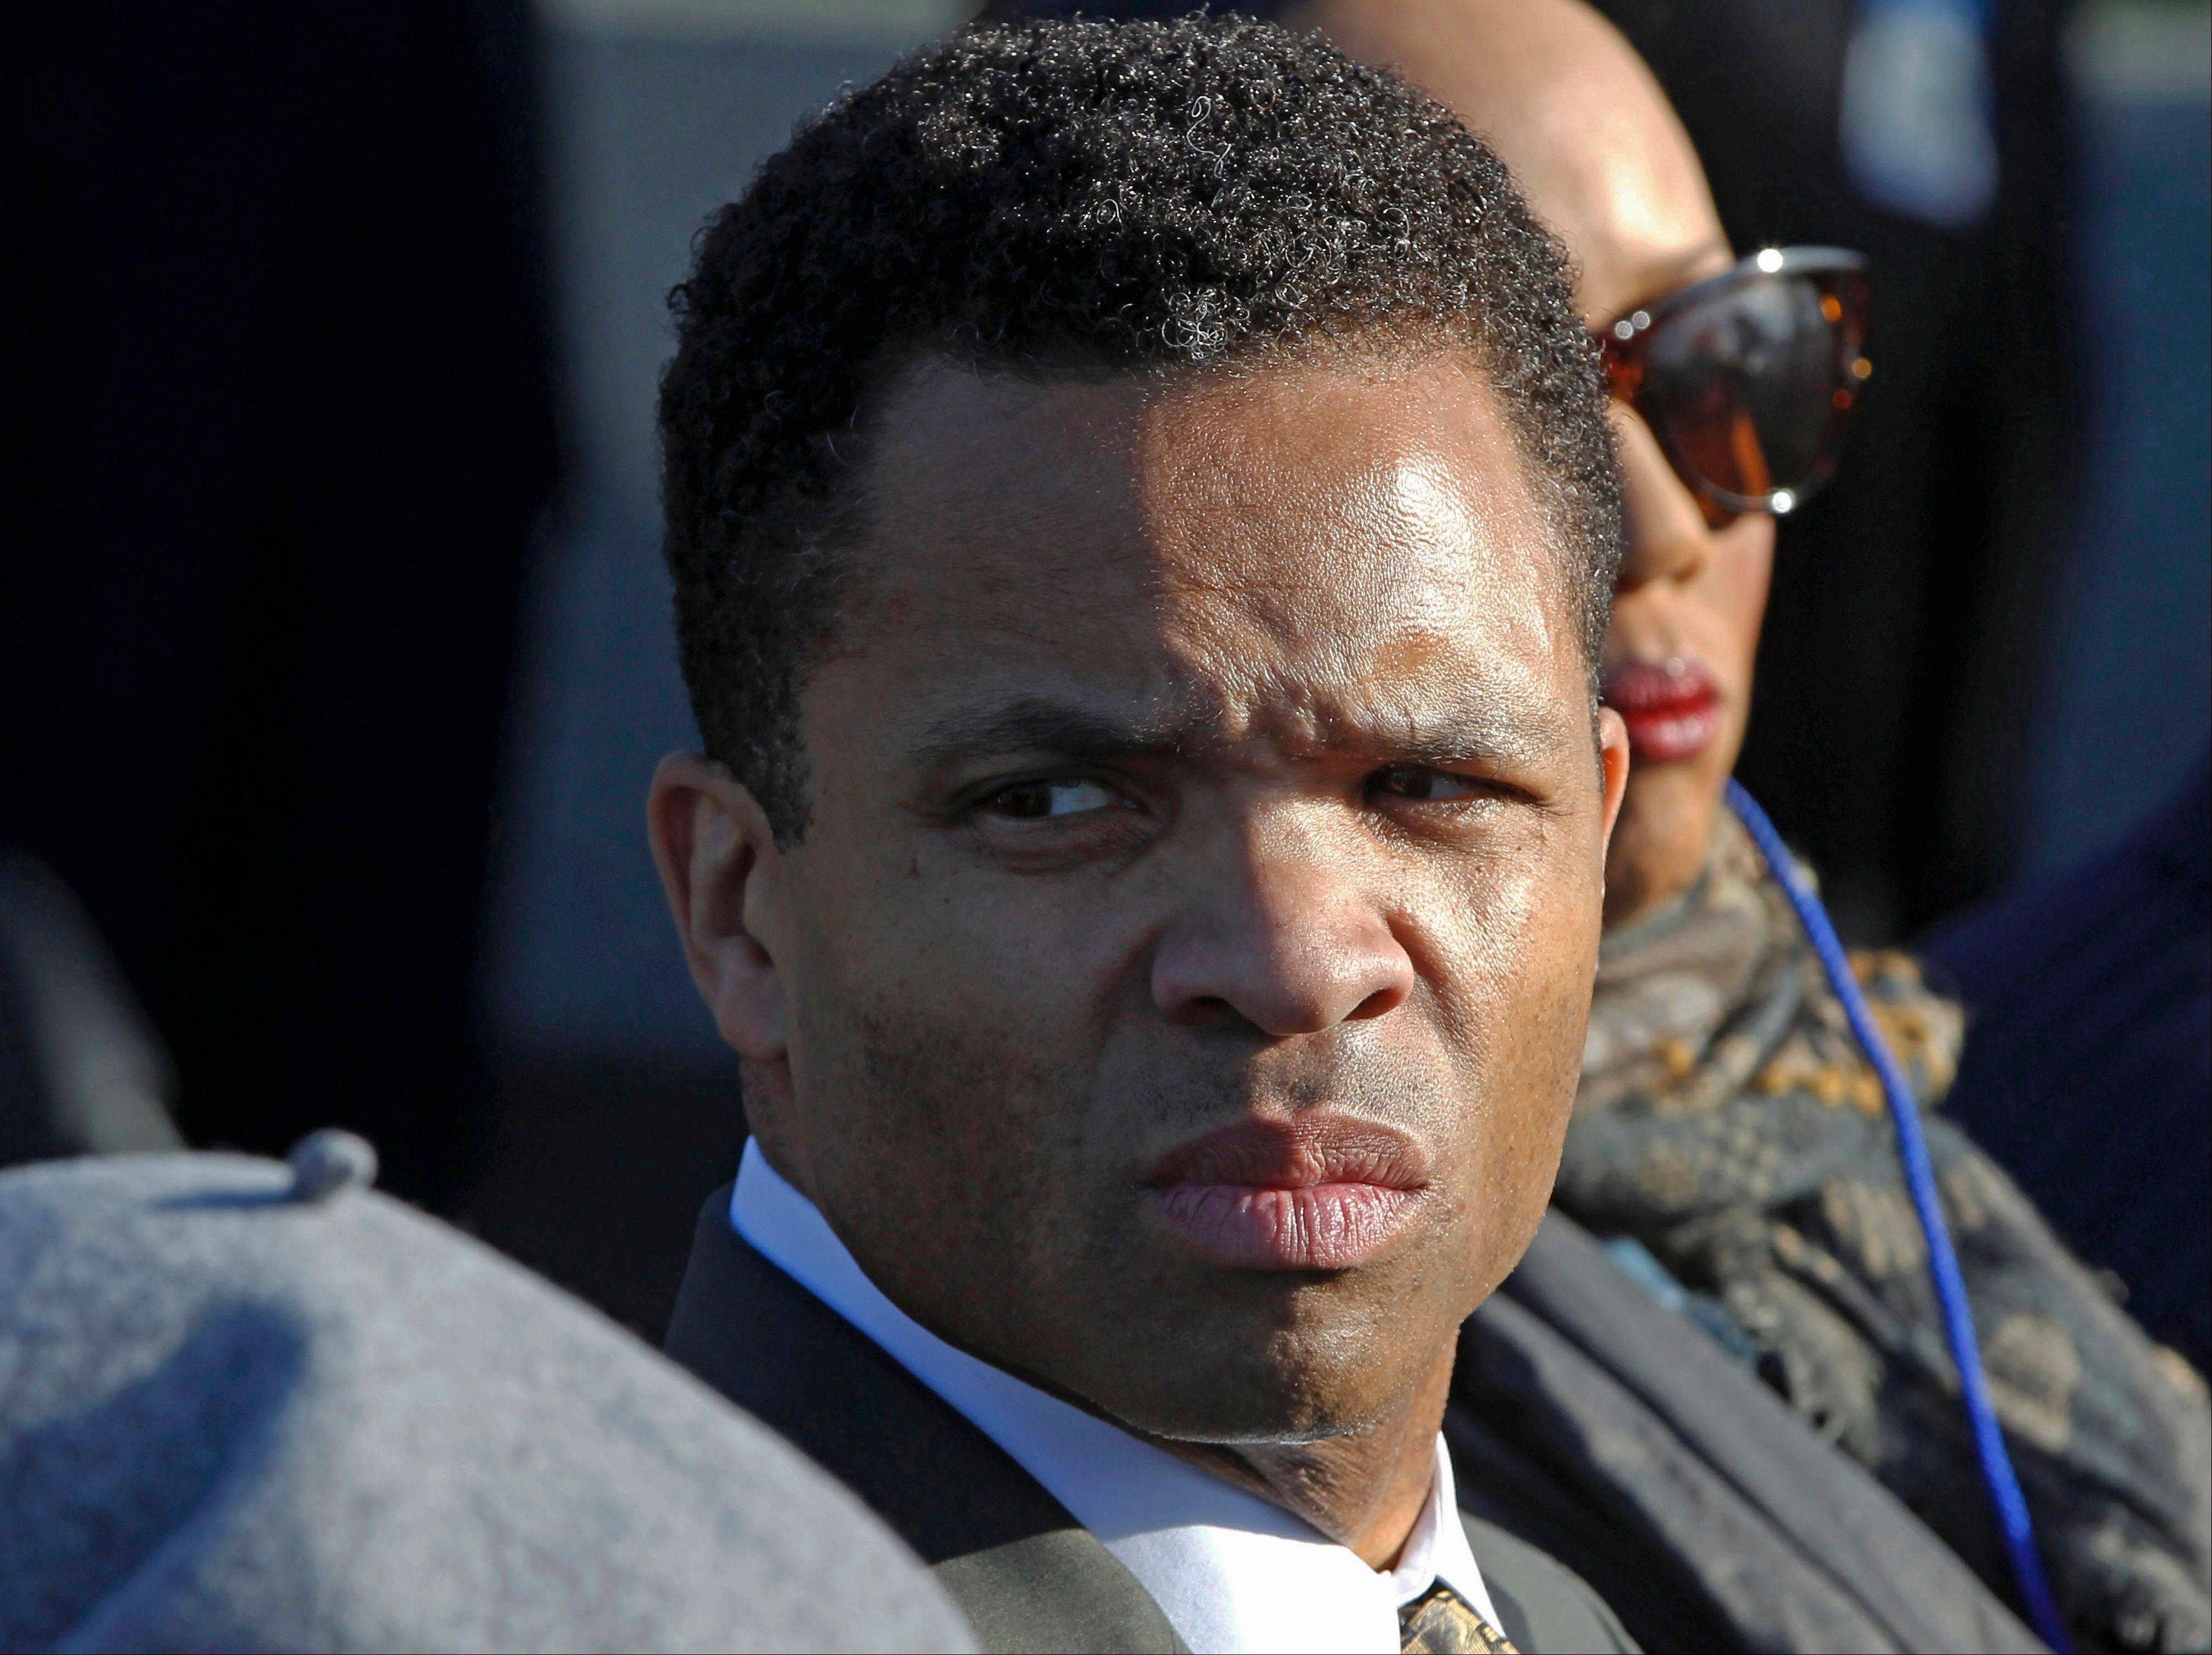 A spokesman at the Mayo Clinic in Minnesota said Tuesday that Rep. Jesse Jackson, Jr., seen here, left the clinic, where he was being treated for bipolar disorder for the second time since taking a leave of absence from Congress in June.